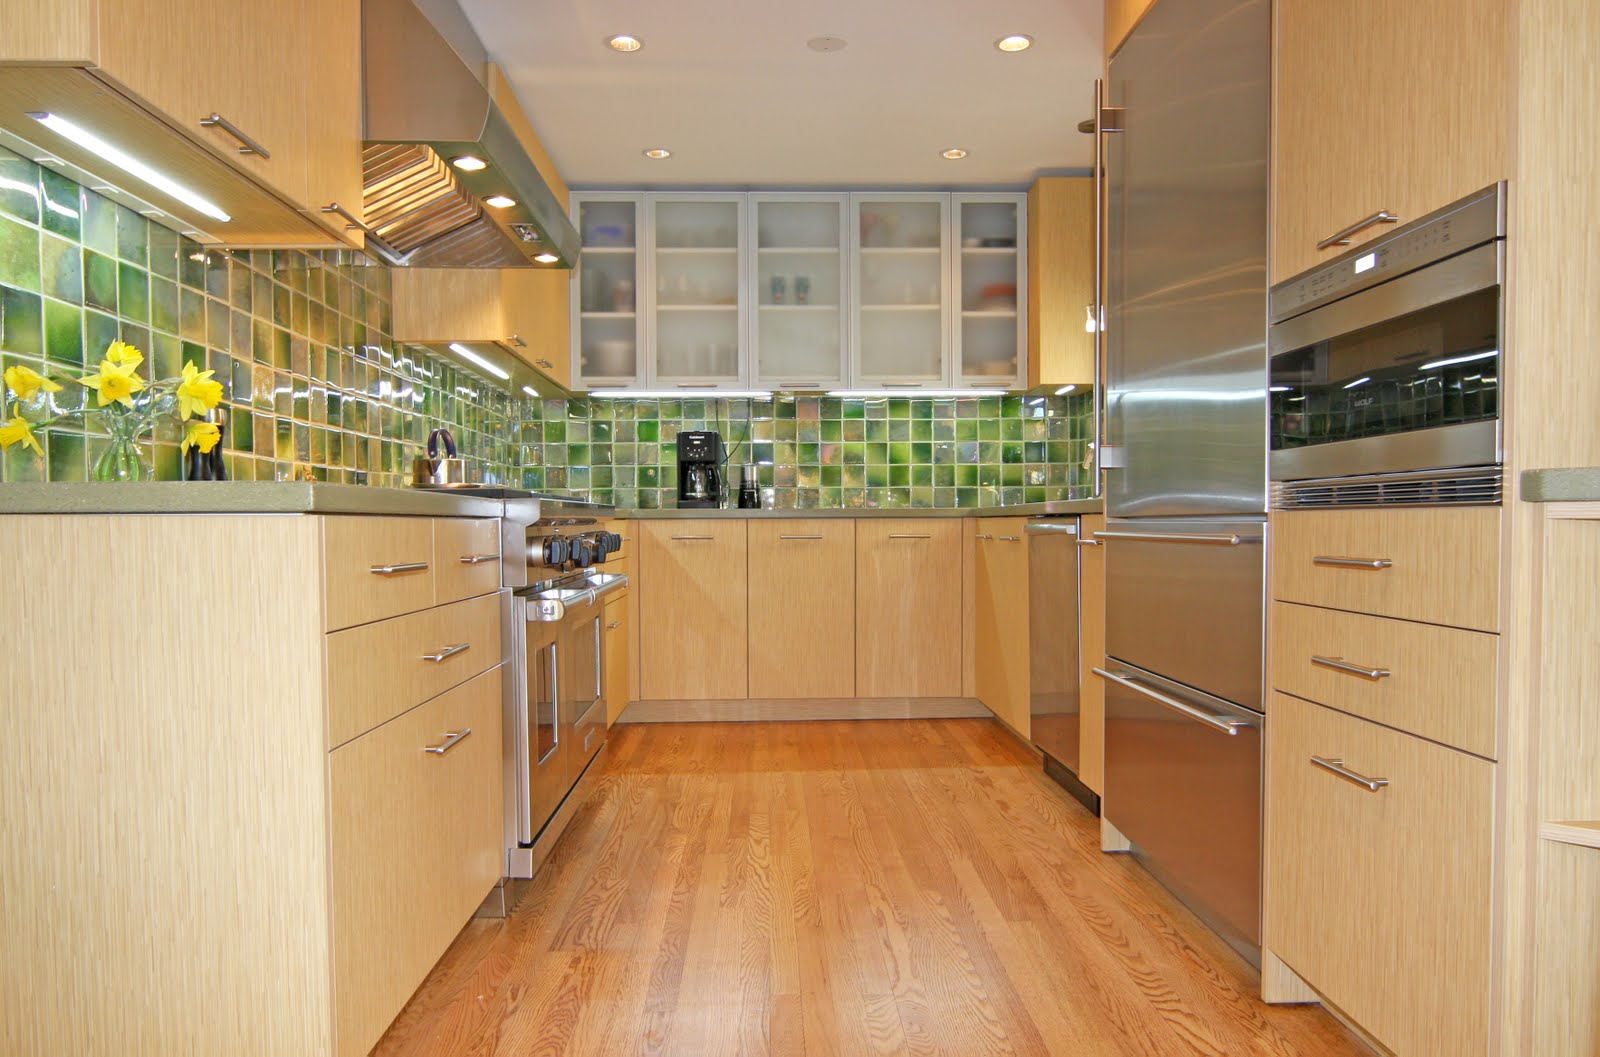 3ccchicago green remodel gourmet galley kitchen remodel for Small galley kitchen designs